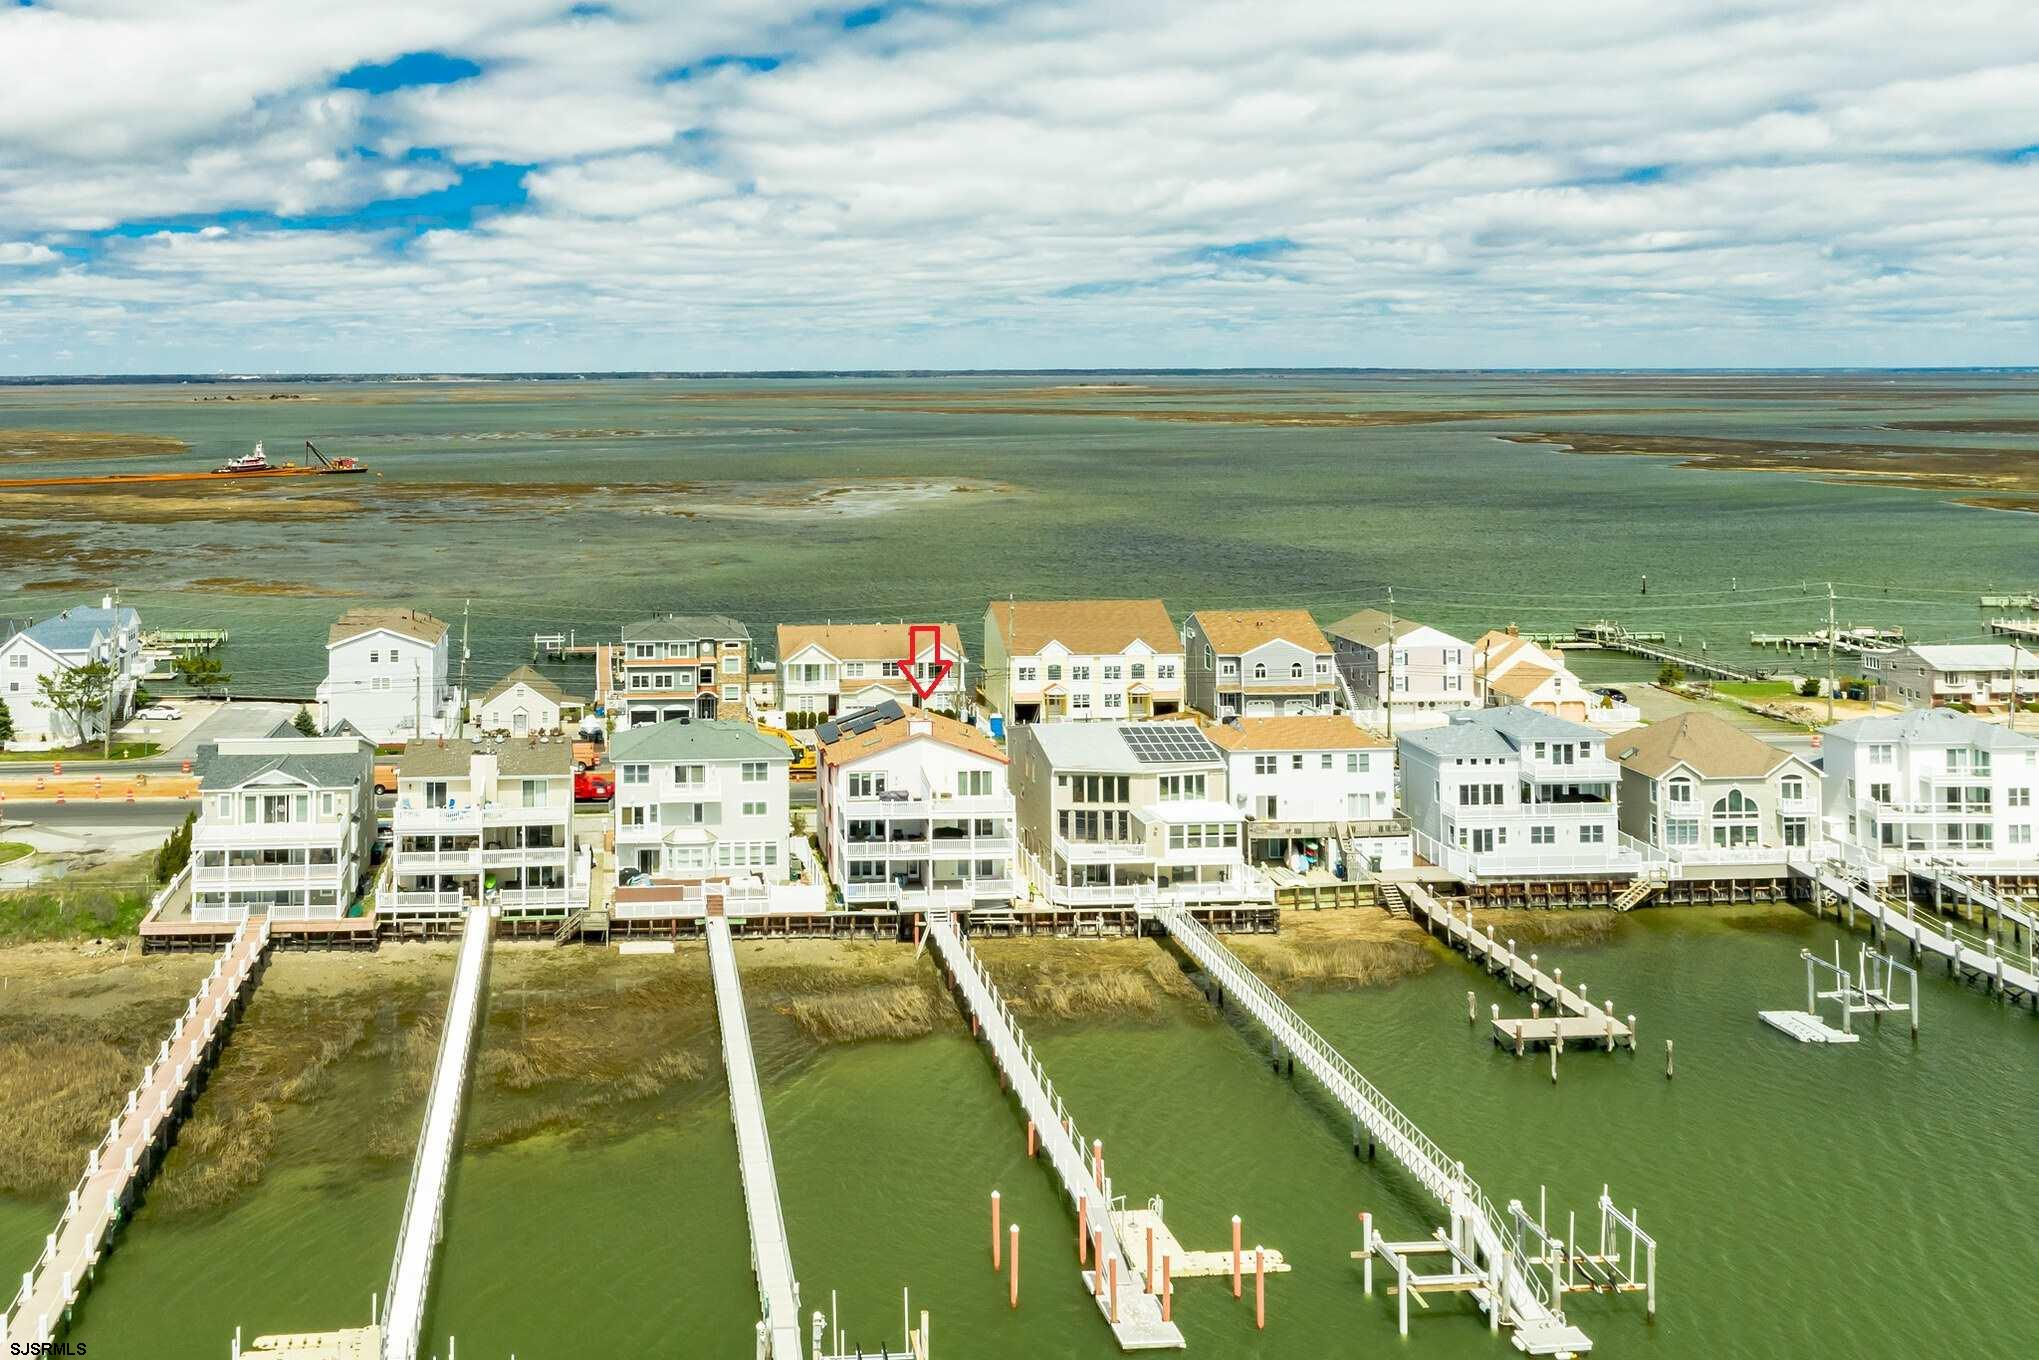 BAY & BOAT LOVERS - This is for you! Wonderful bayfront property with 3 decks overlooking the St Geo